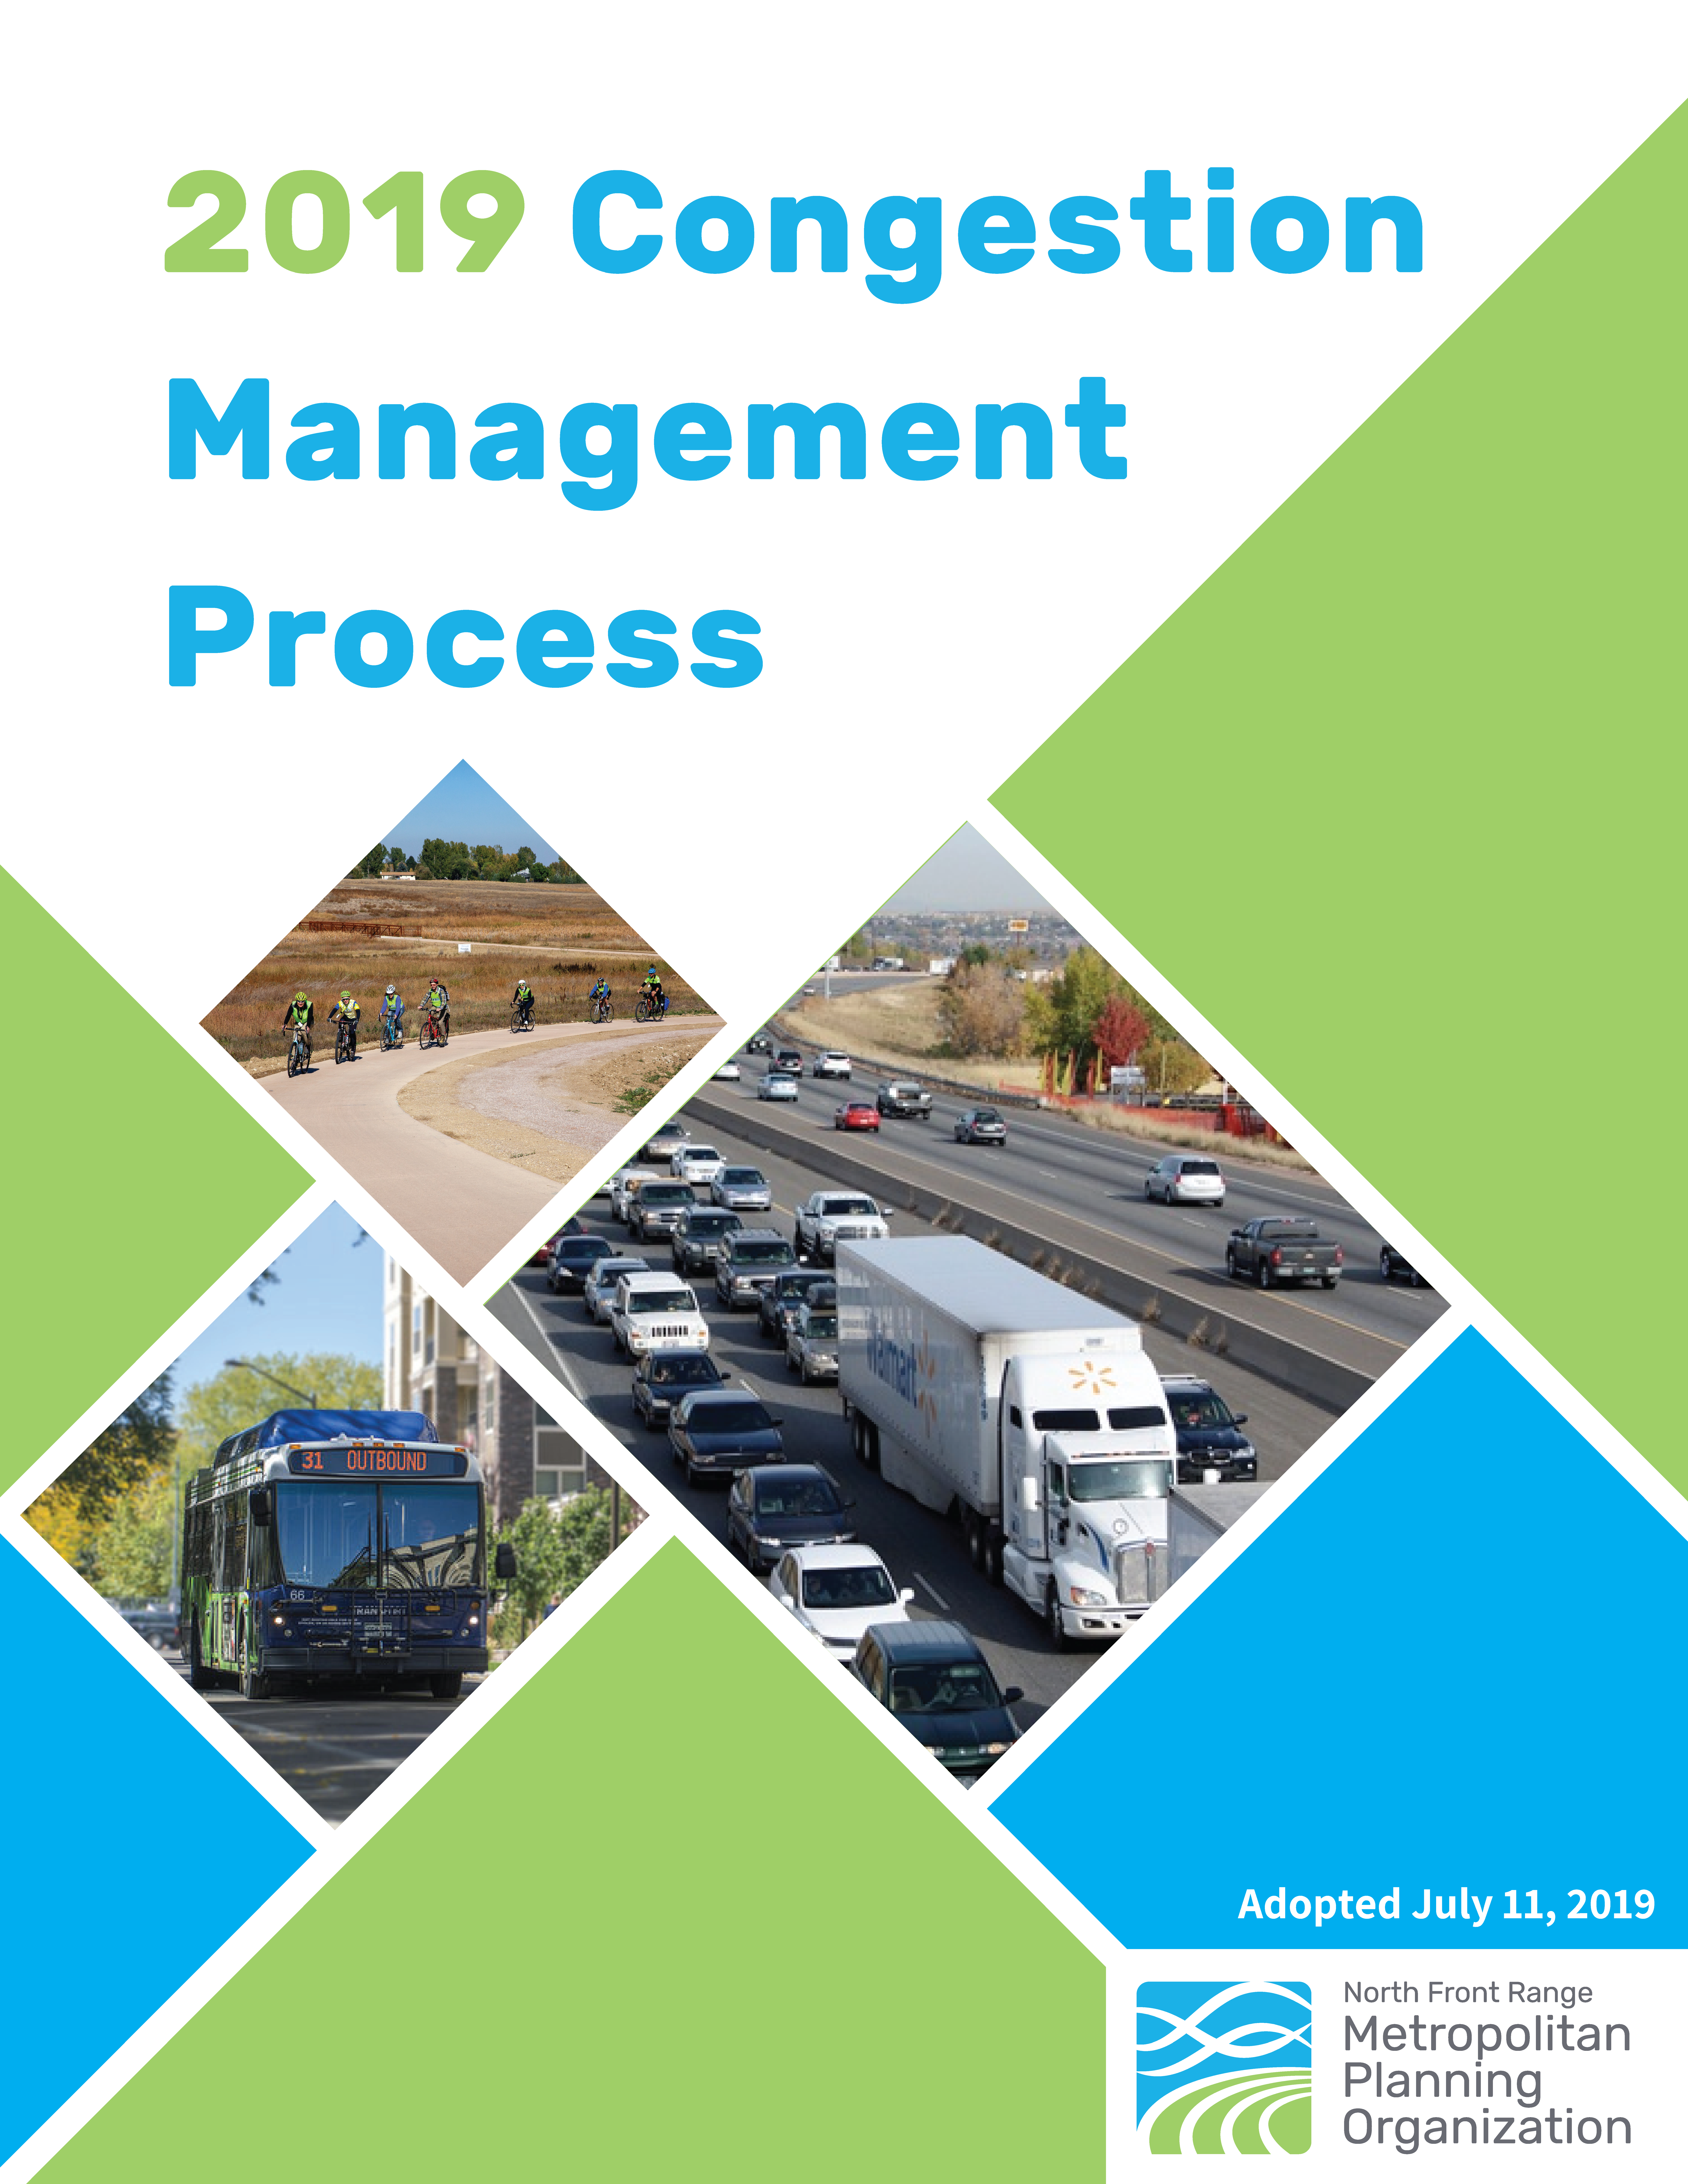 2019 Congestion Management Process